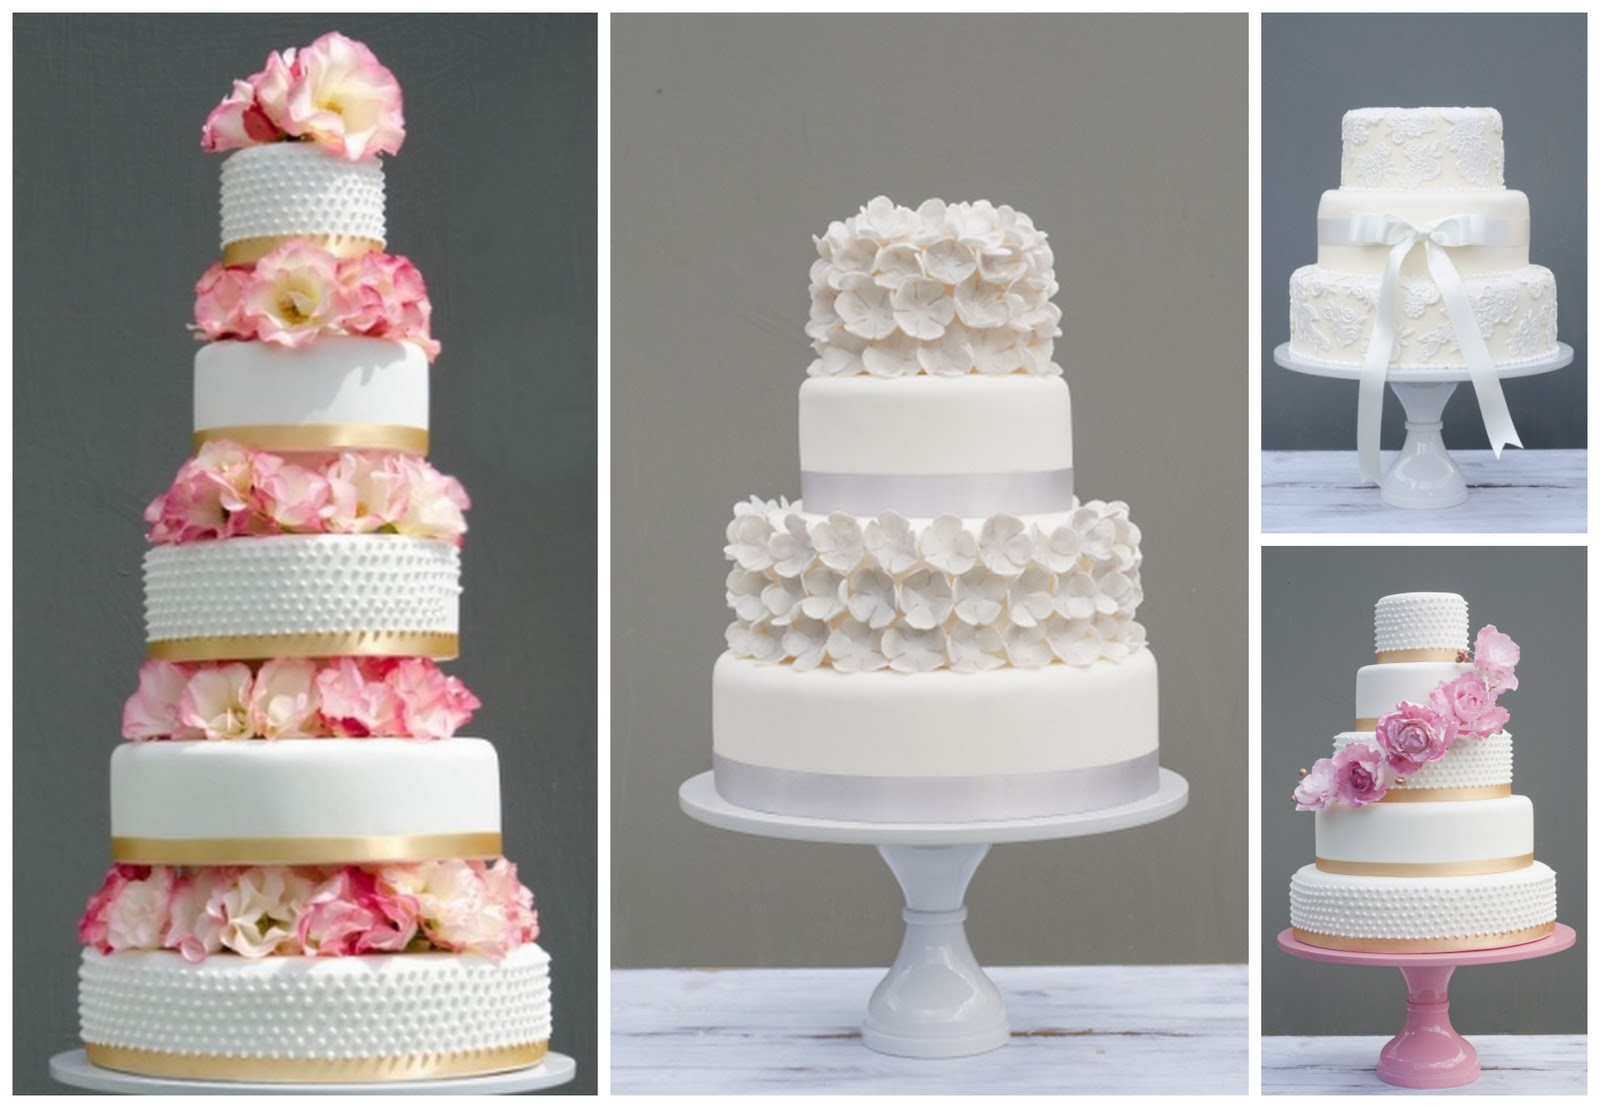 Edible Wedding Place Cards & Cakes